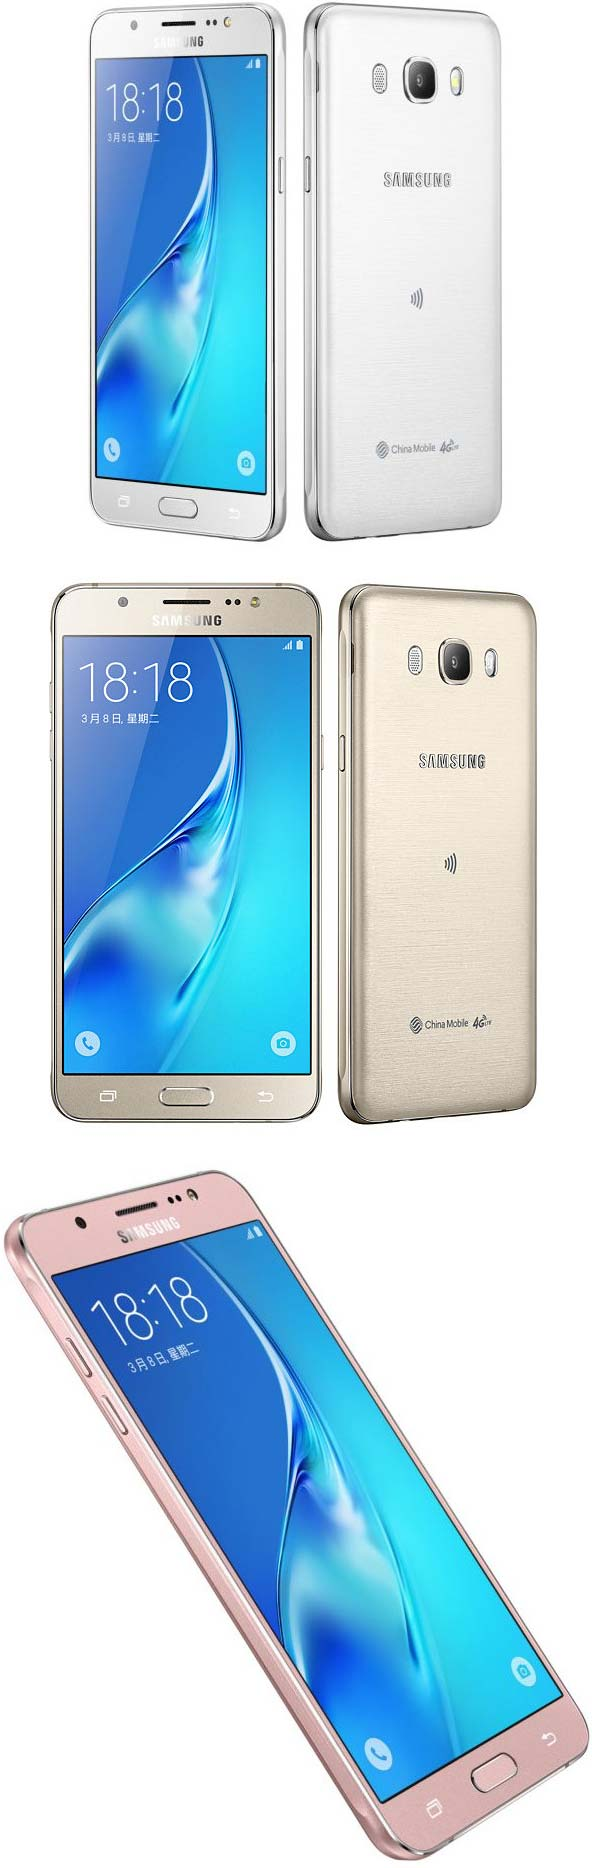 Умные телефоны Samsung Galaxy J5 (2016) and Galaxy J7 (2016)